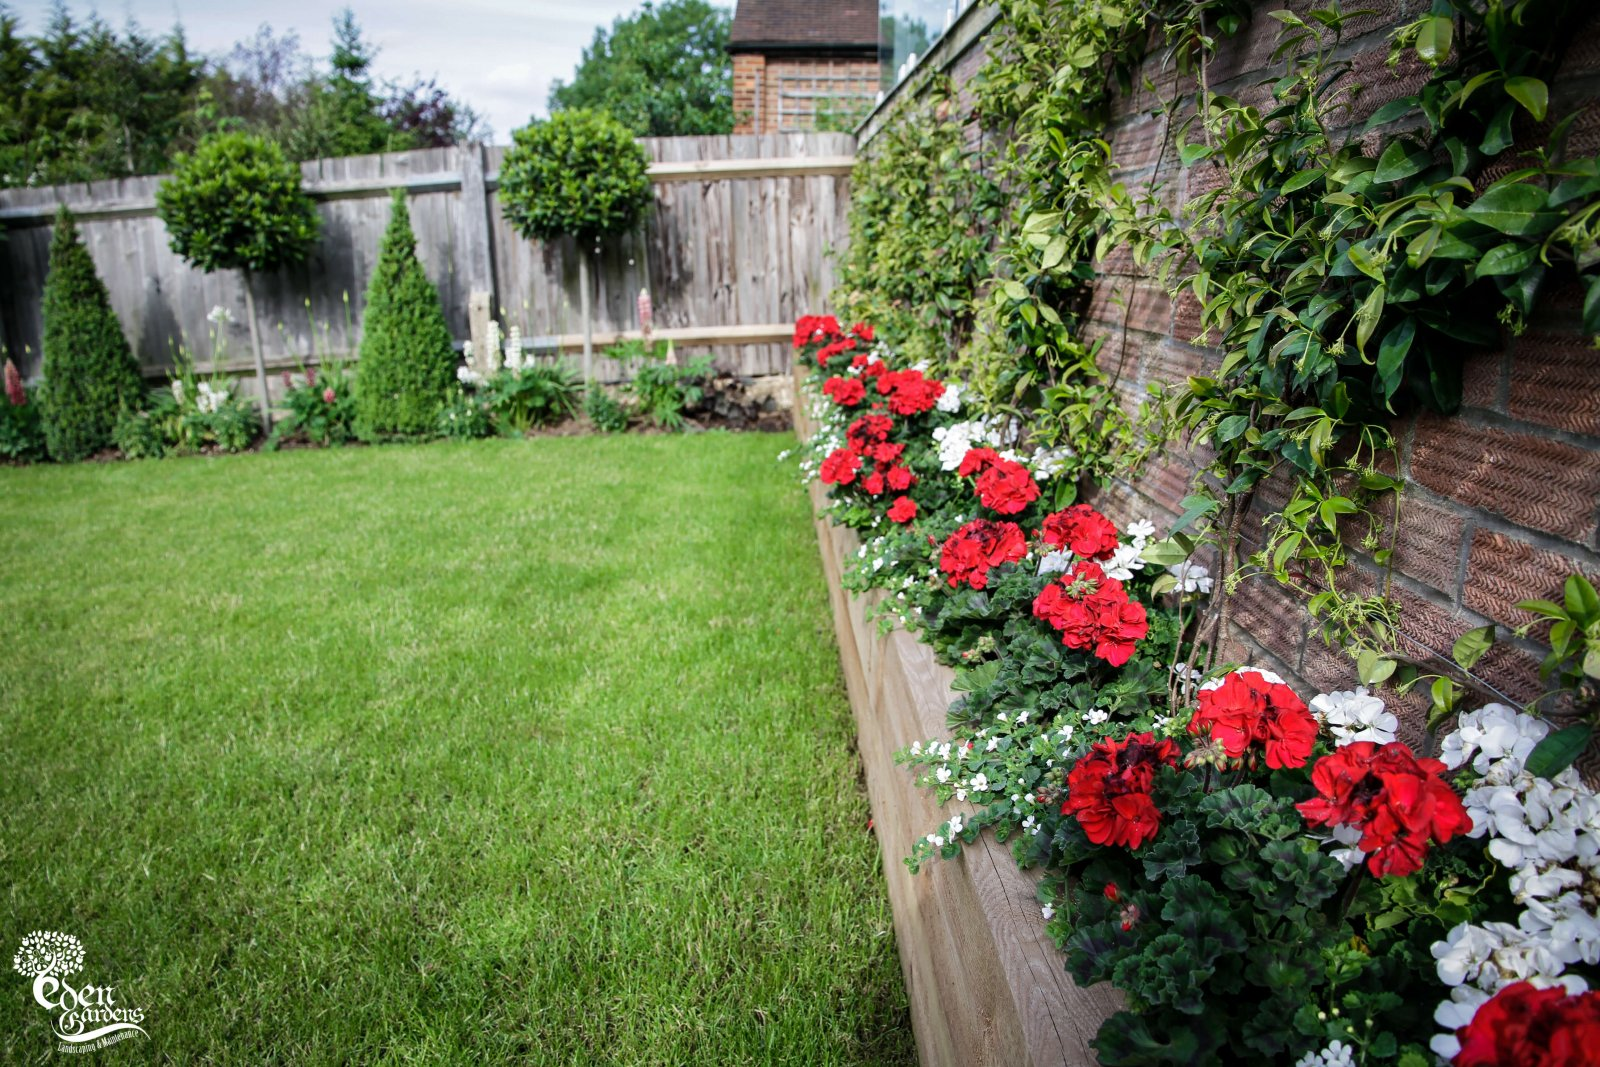 The garden – to do it ourselves or to look for a professional gardening service?